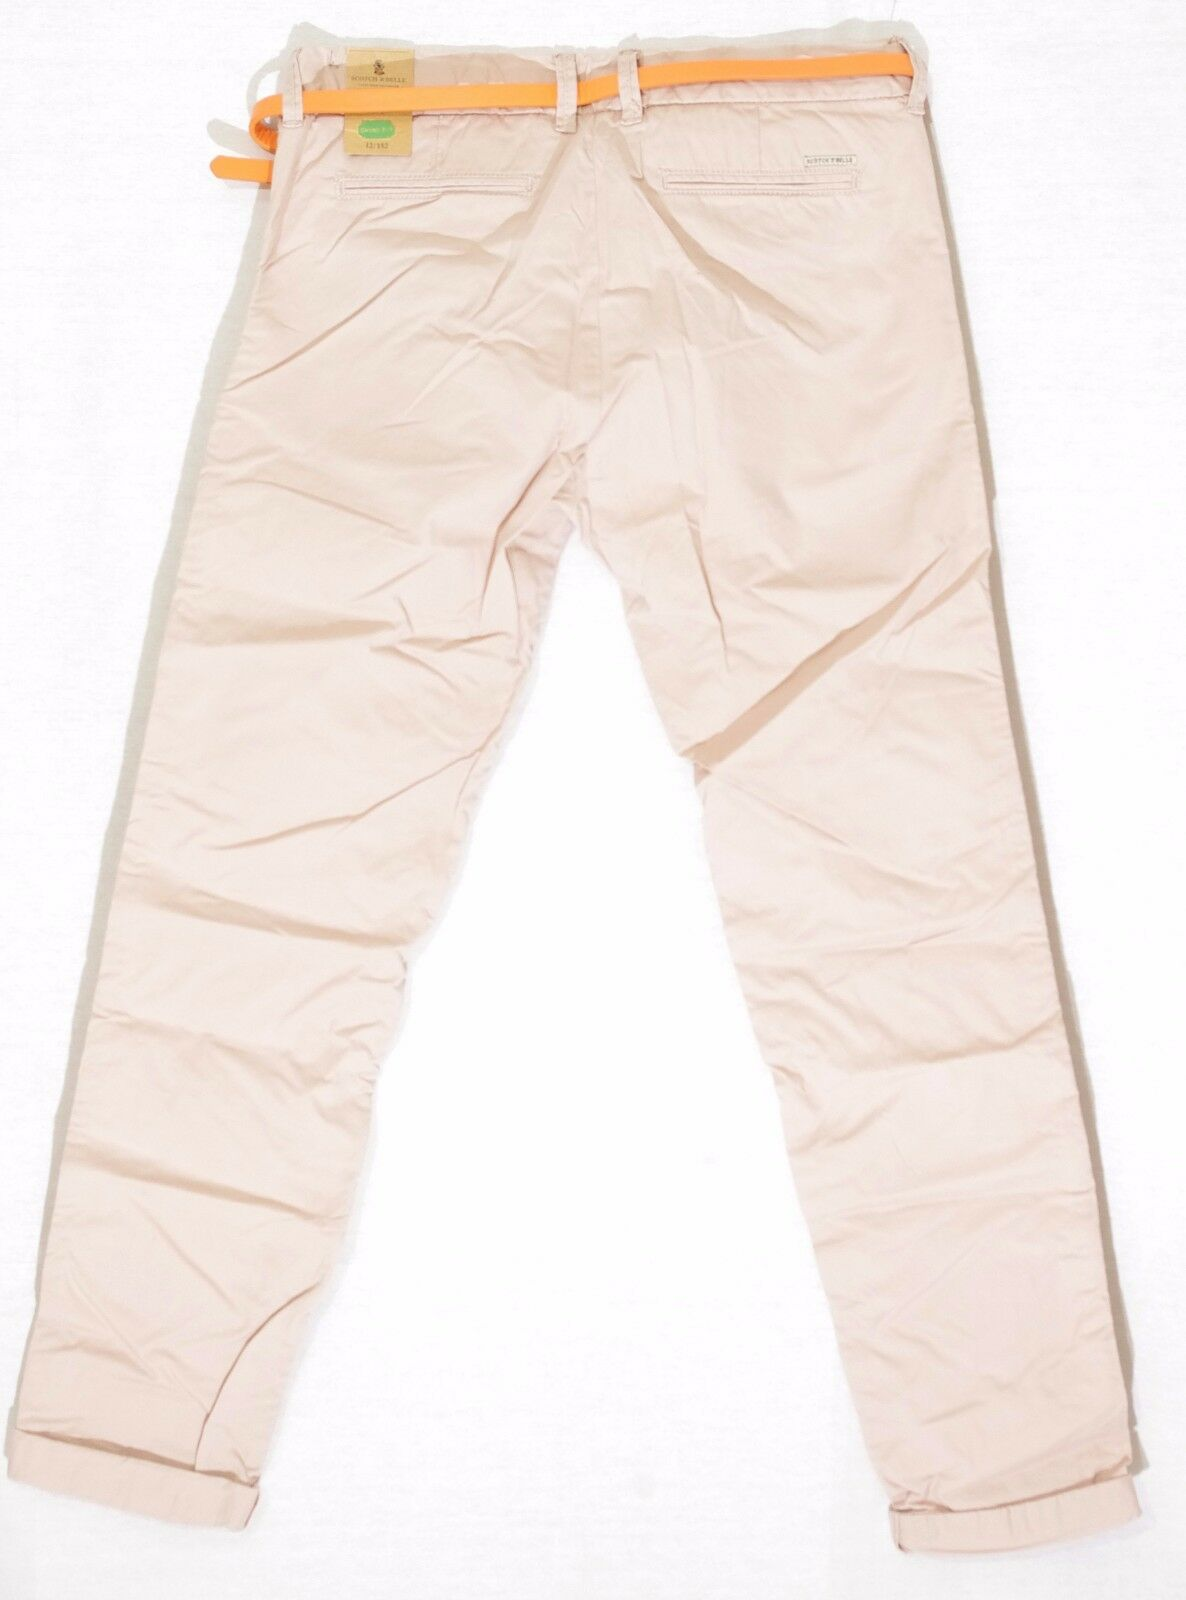 96d8a658cdcb4 Pantalon Chino Junior fille SCOTCH   SODA R BELLE Rose Poudré taille 12 Ans